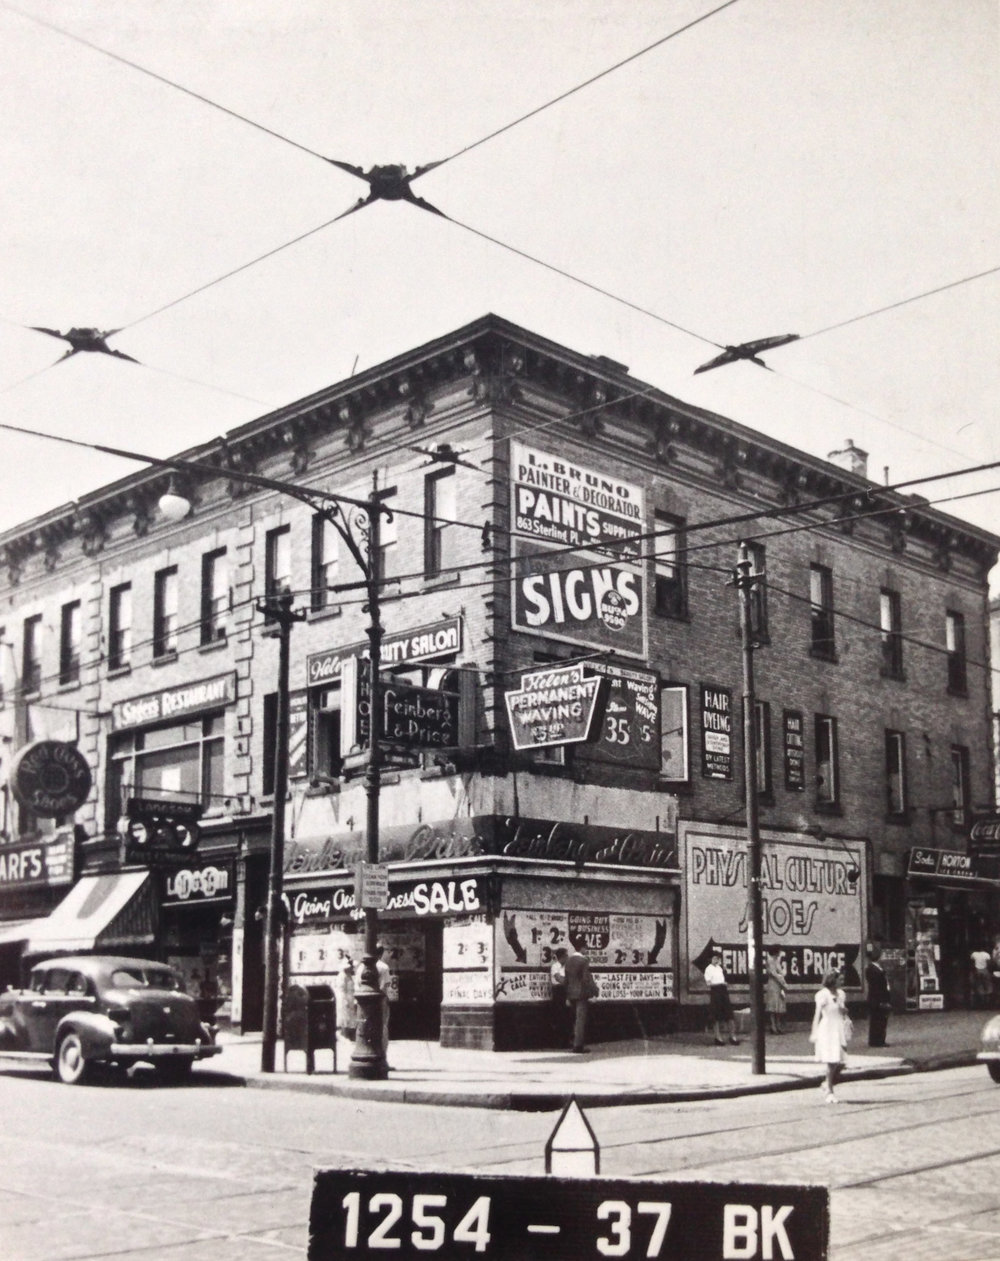 792 Nostrand Ave., early 1940s. Photo: Department of Finance collection, NYC Municipal Archives.